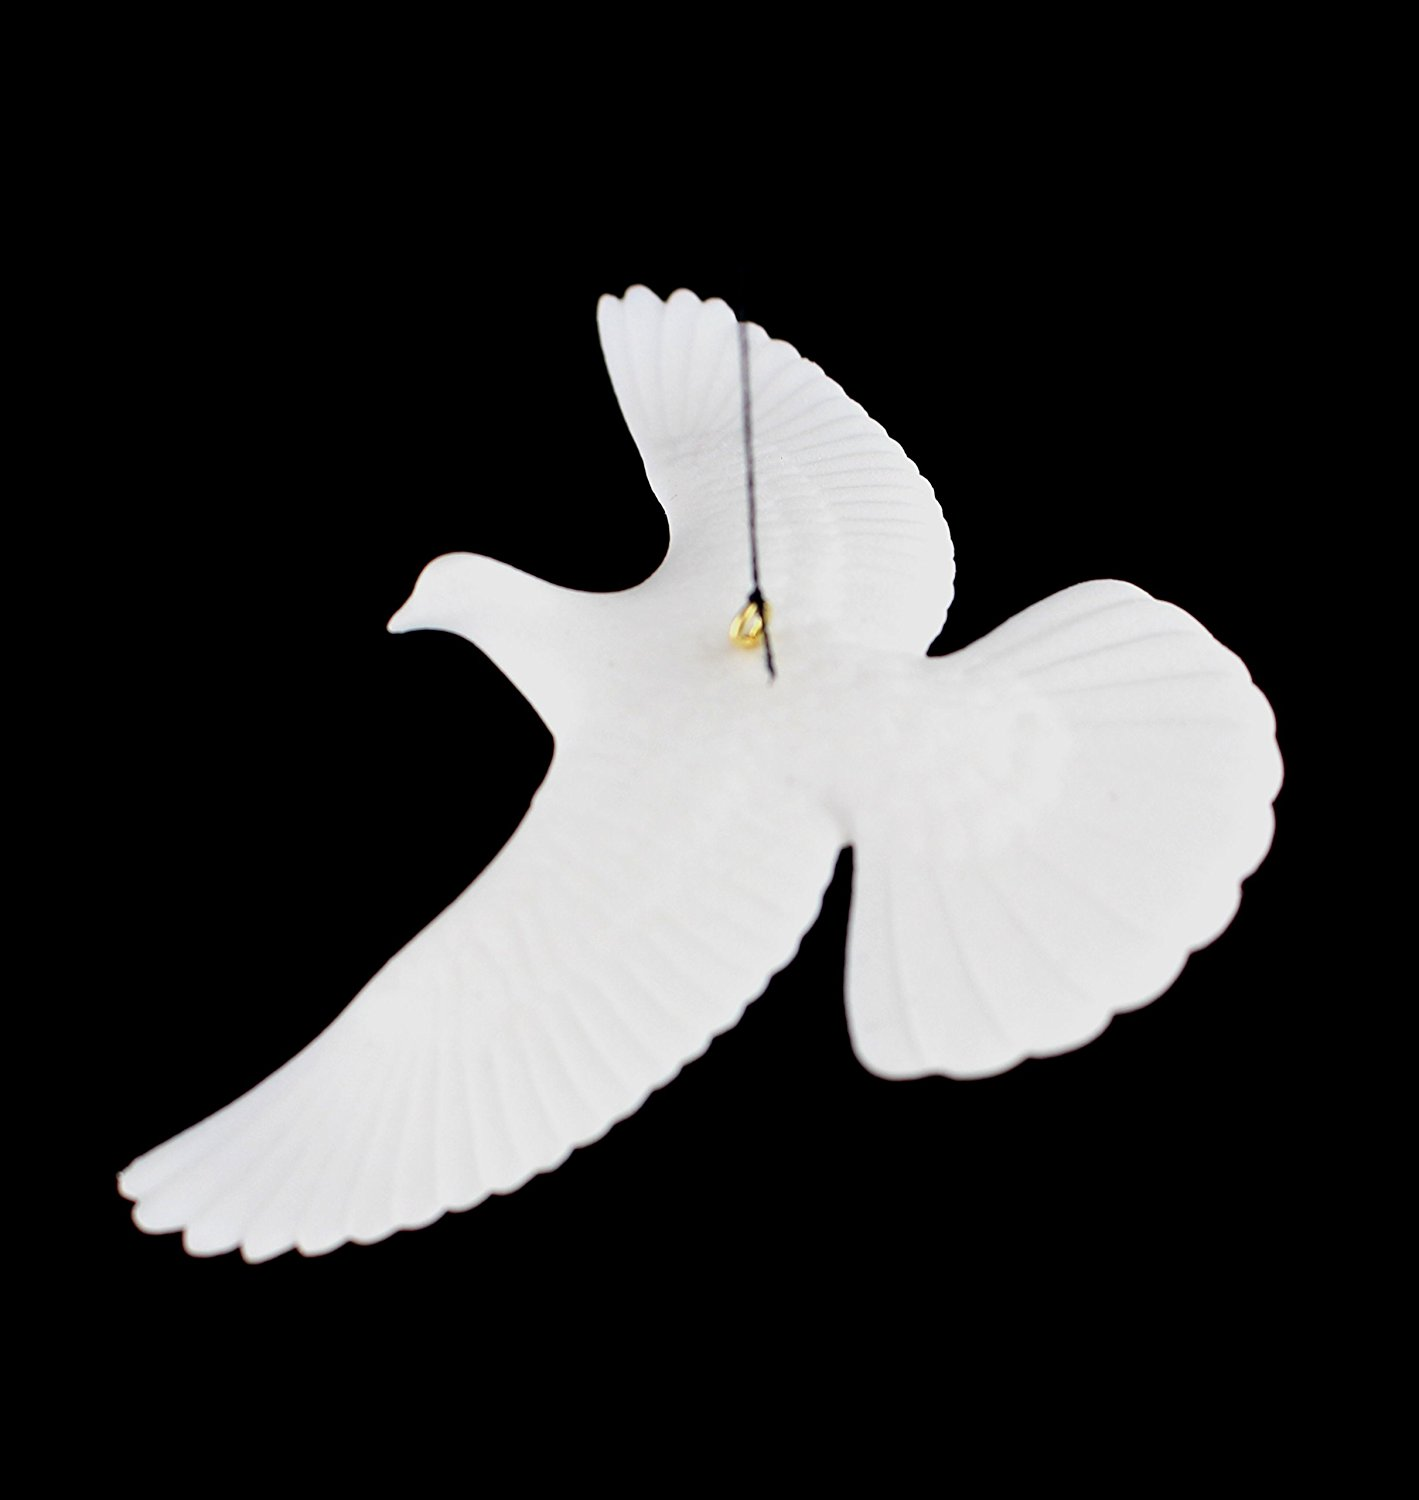 Mourning Dove clipart pigeon flying Images Decorating Ideas Doves Doves